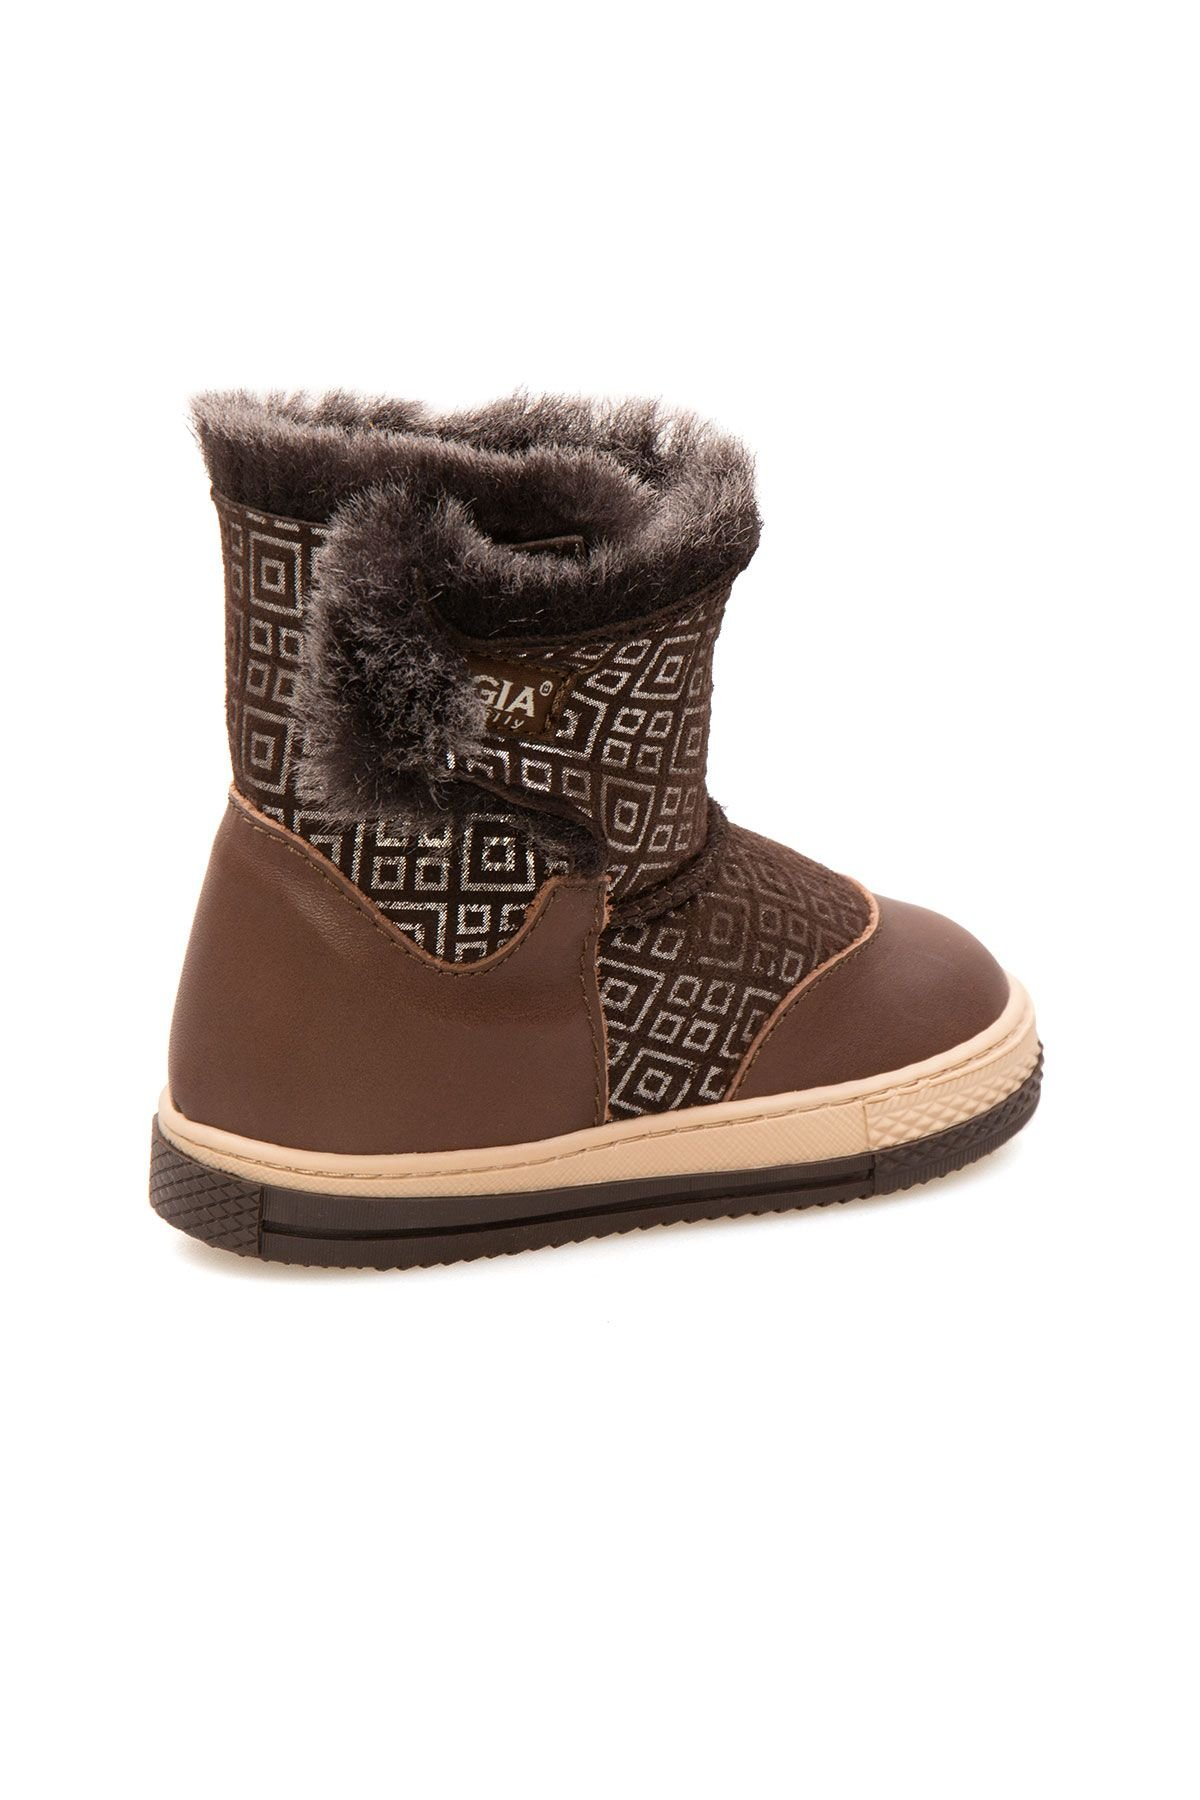 Pegia Children's Shearling Boots 186030 Brown